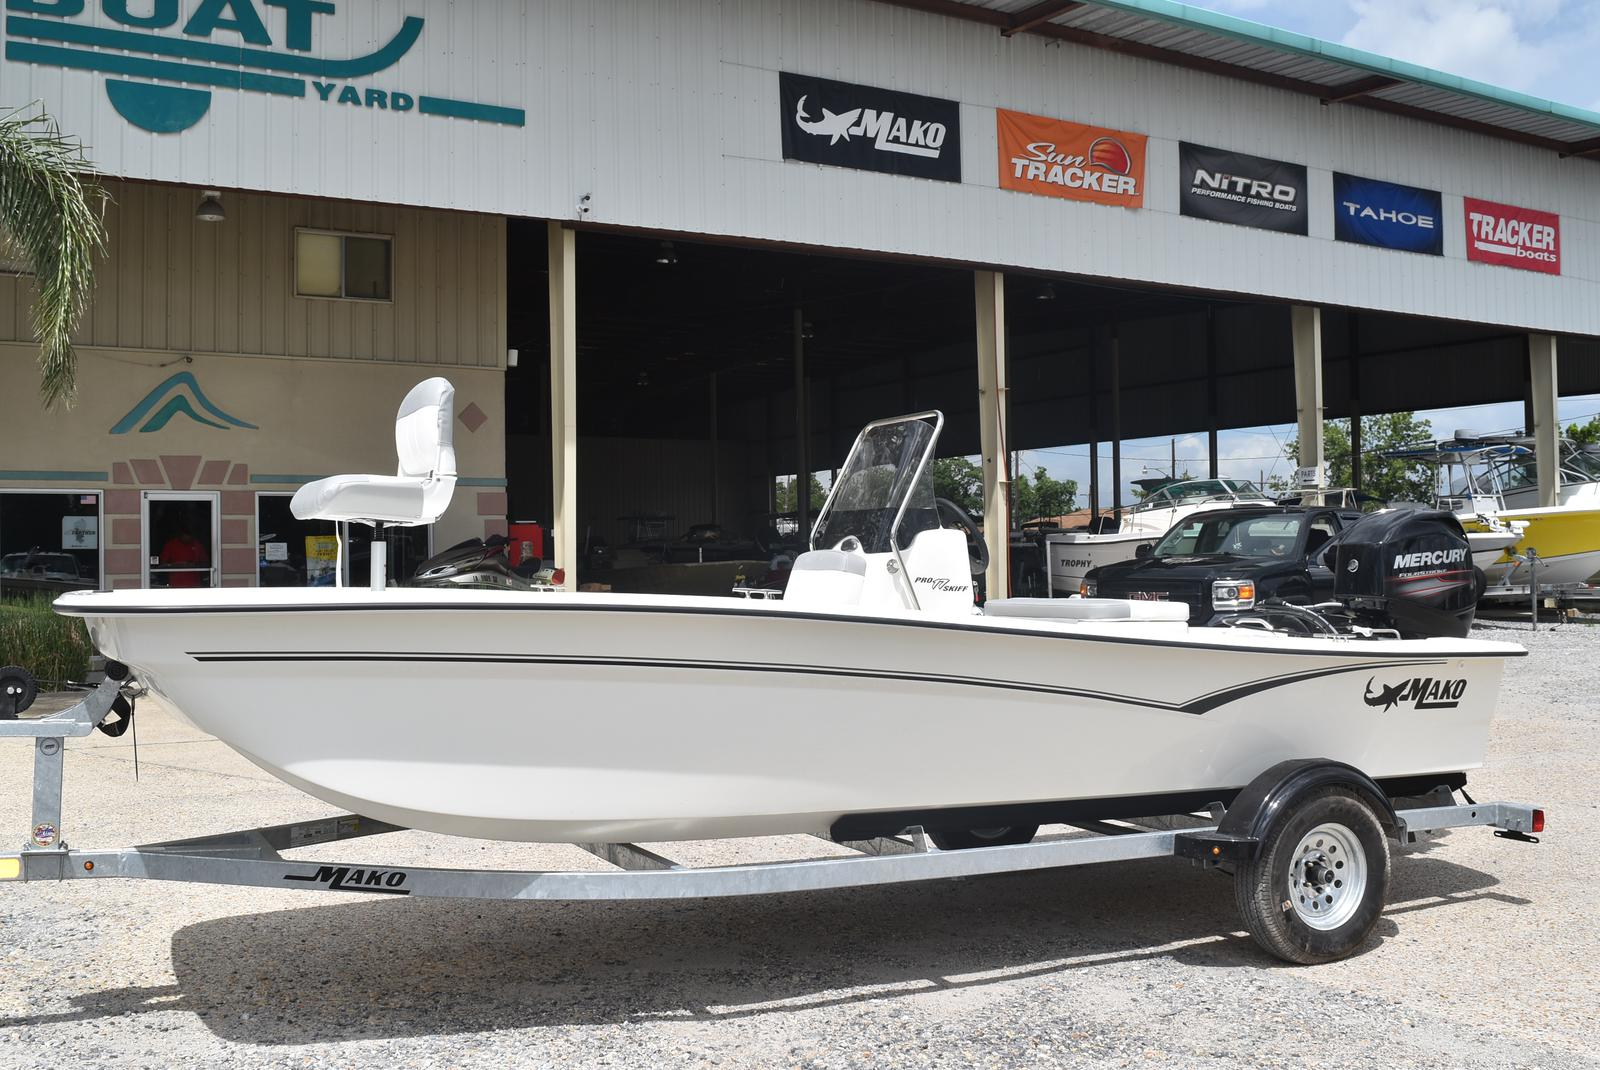 2020 Mako boat for sale, model of the boat is Pro Skiff 17, 75 ELPT & Image # 113 of 702